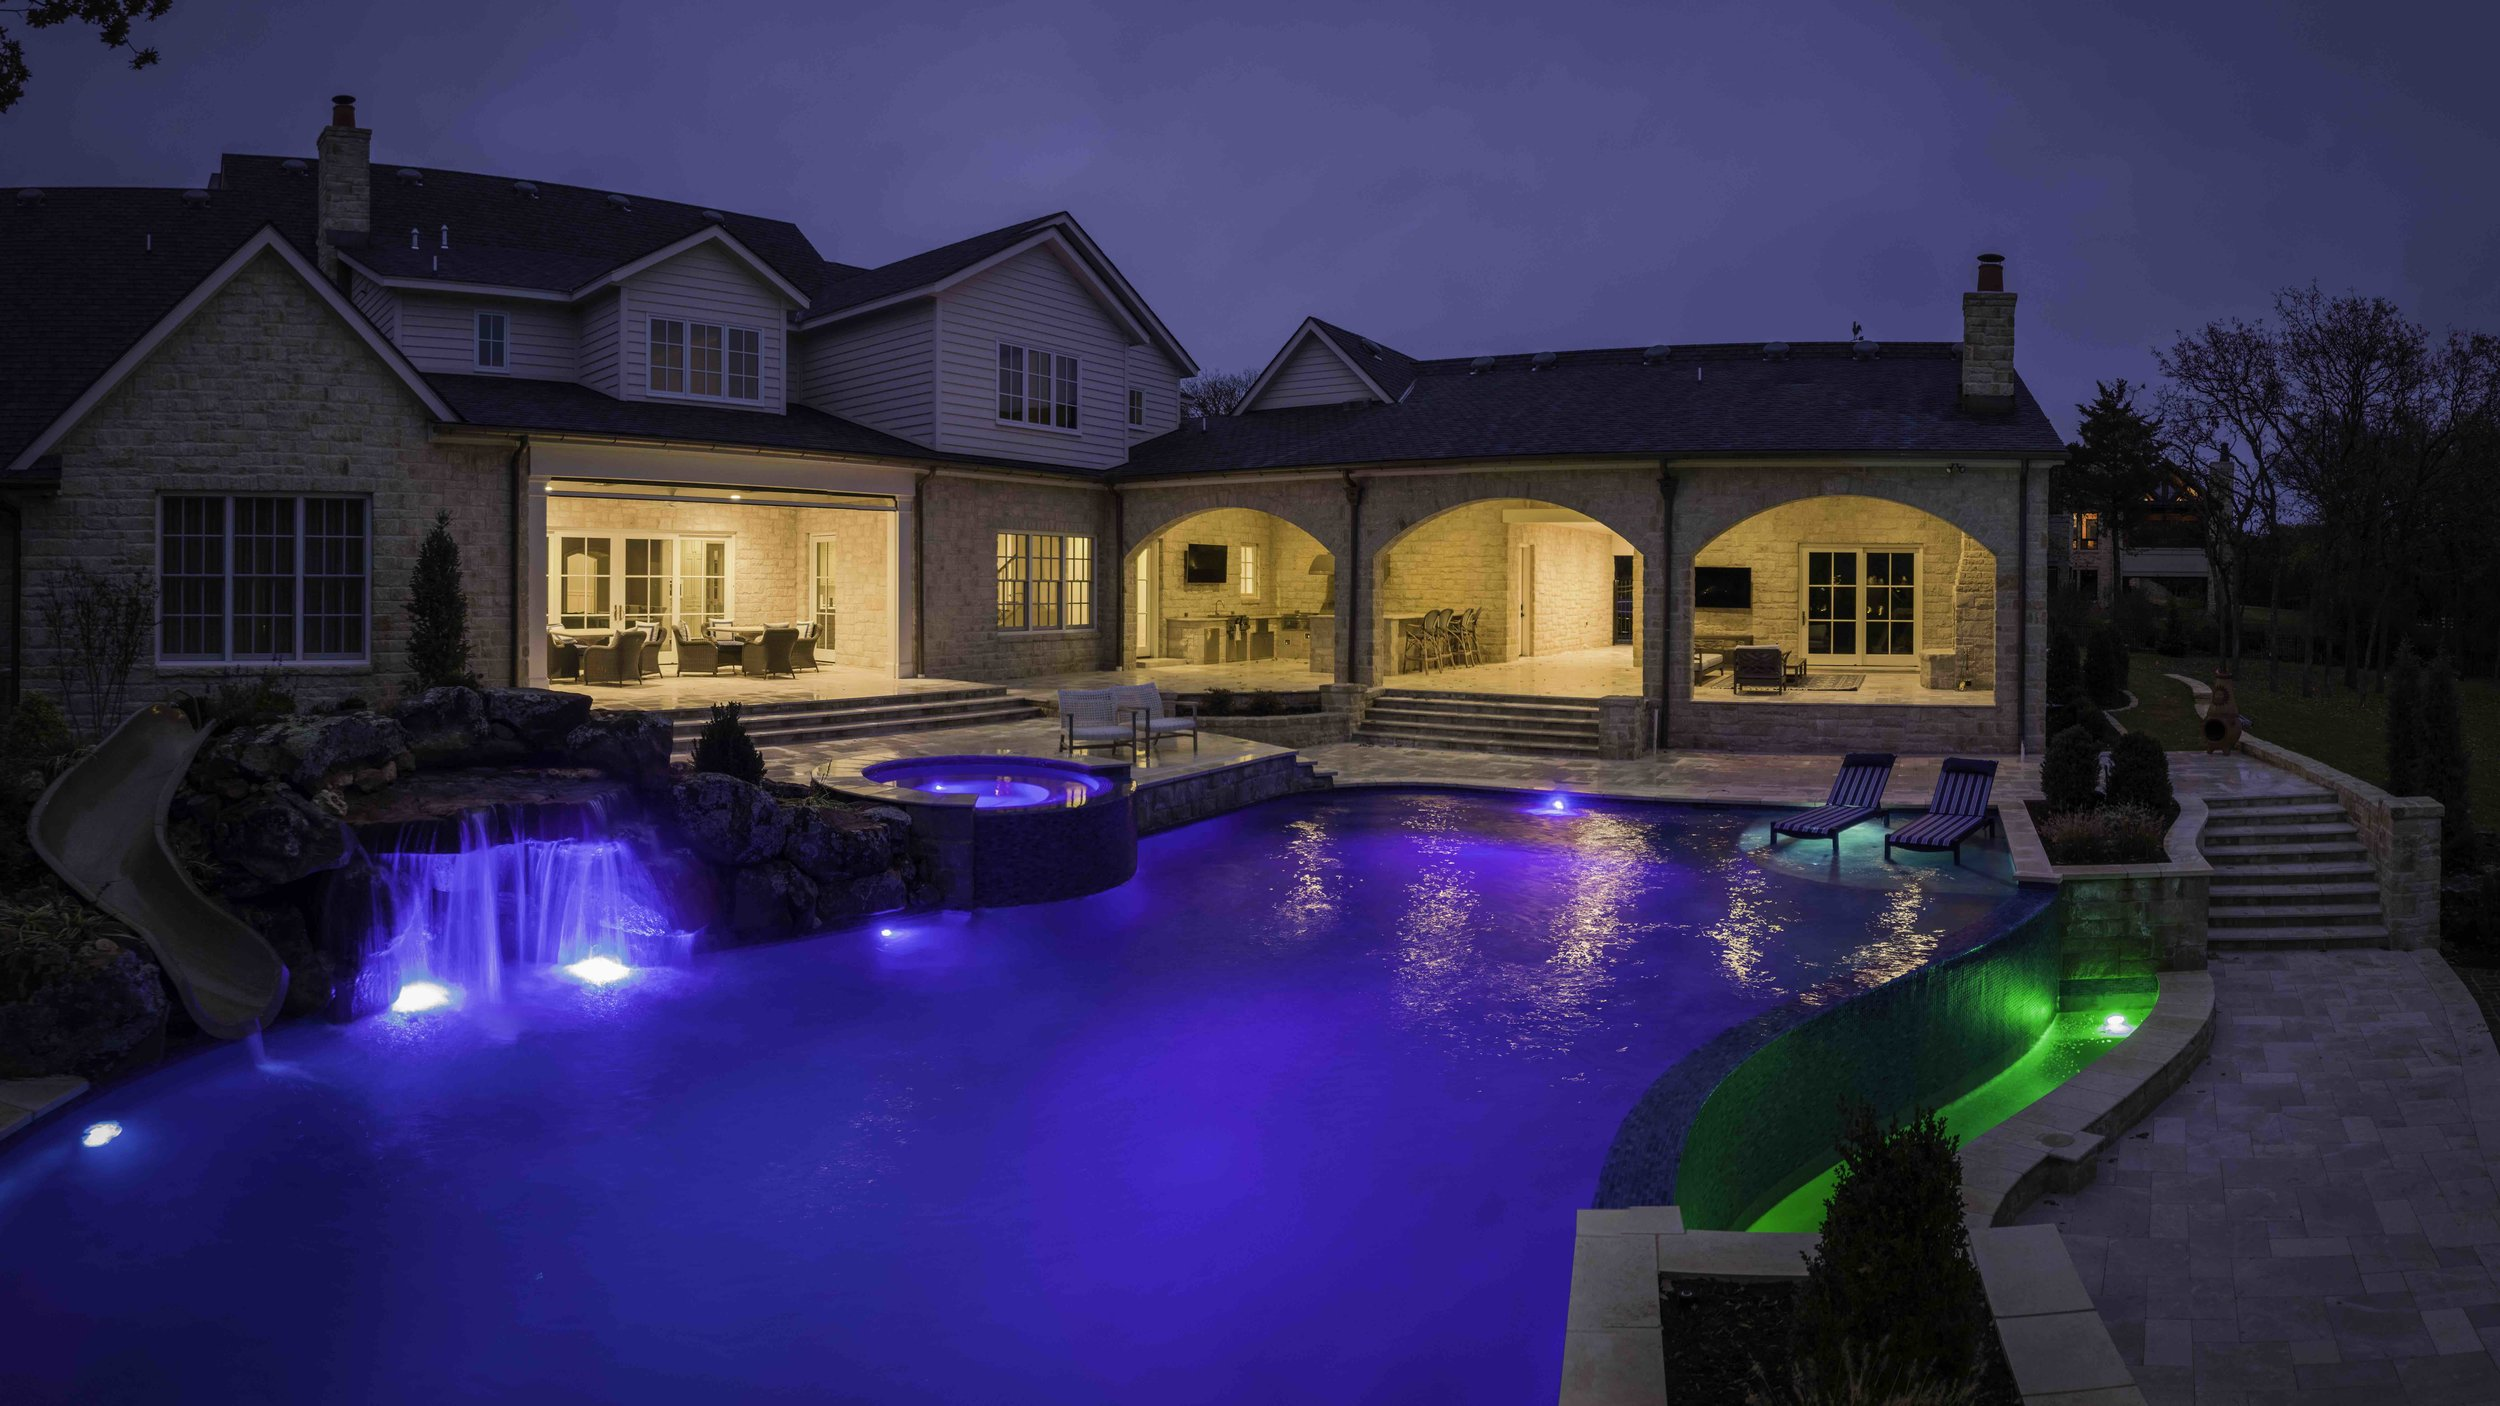 Myers Pool | AQUASCAPE | evening | color | ANDREW G | panorama 9 | 16x9 | Print Ready - 25.jpg